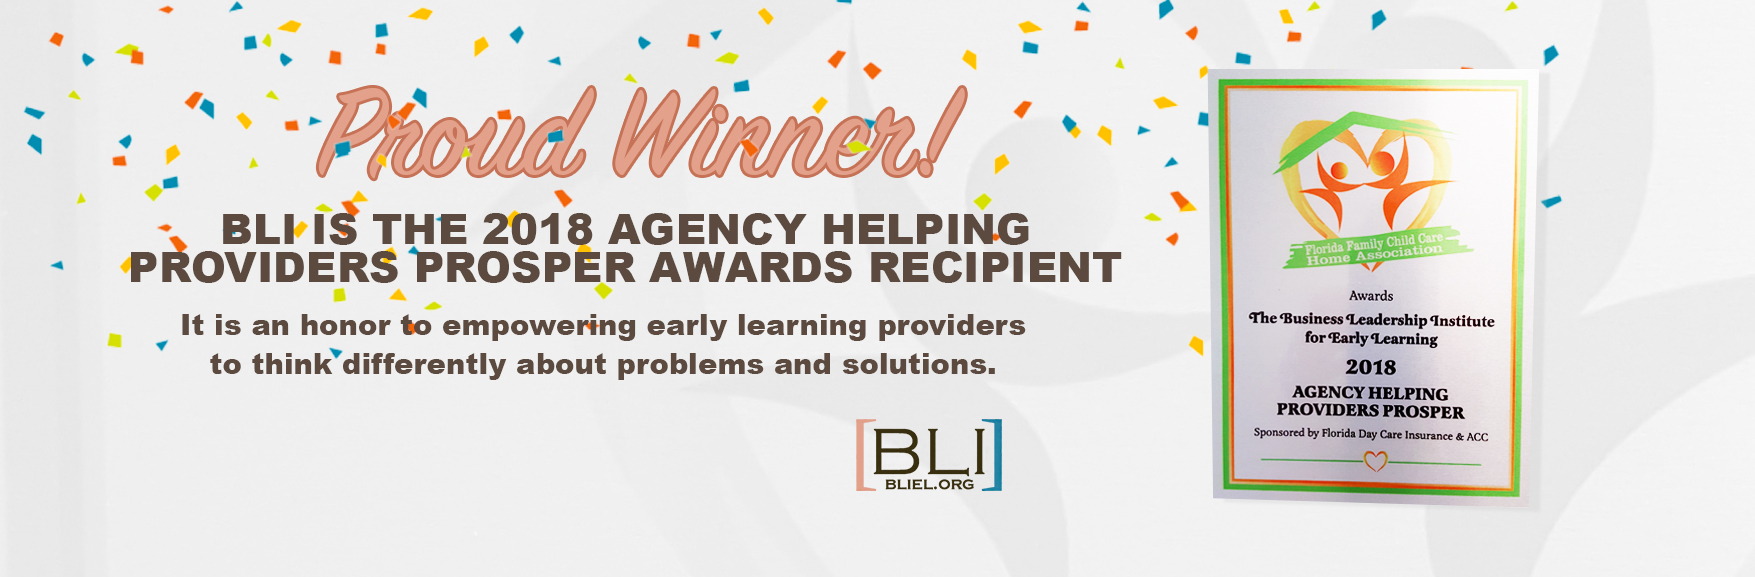 BLI is the 2018 Agency Helping Providers Prosper Awards Recipient